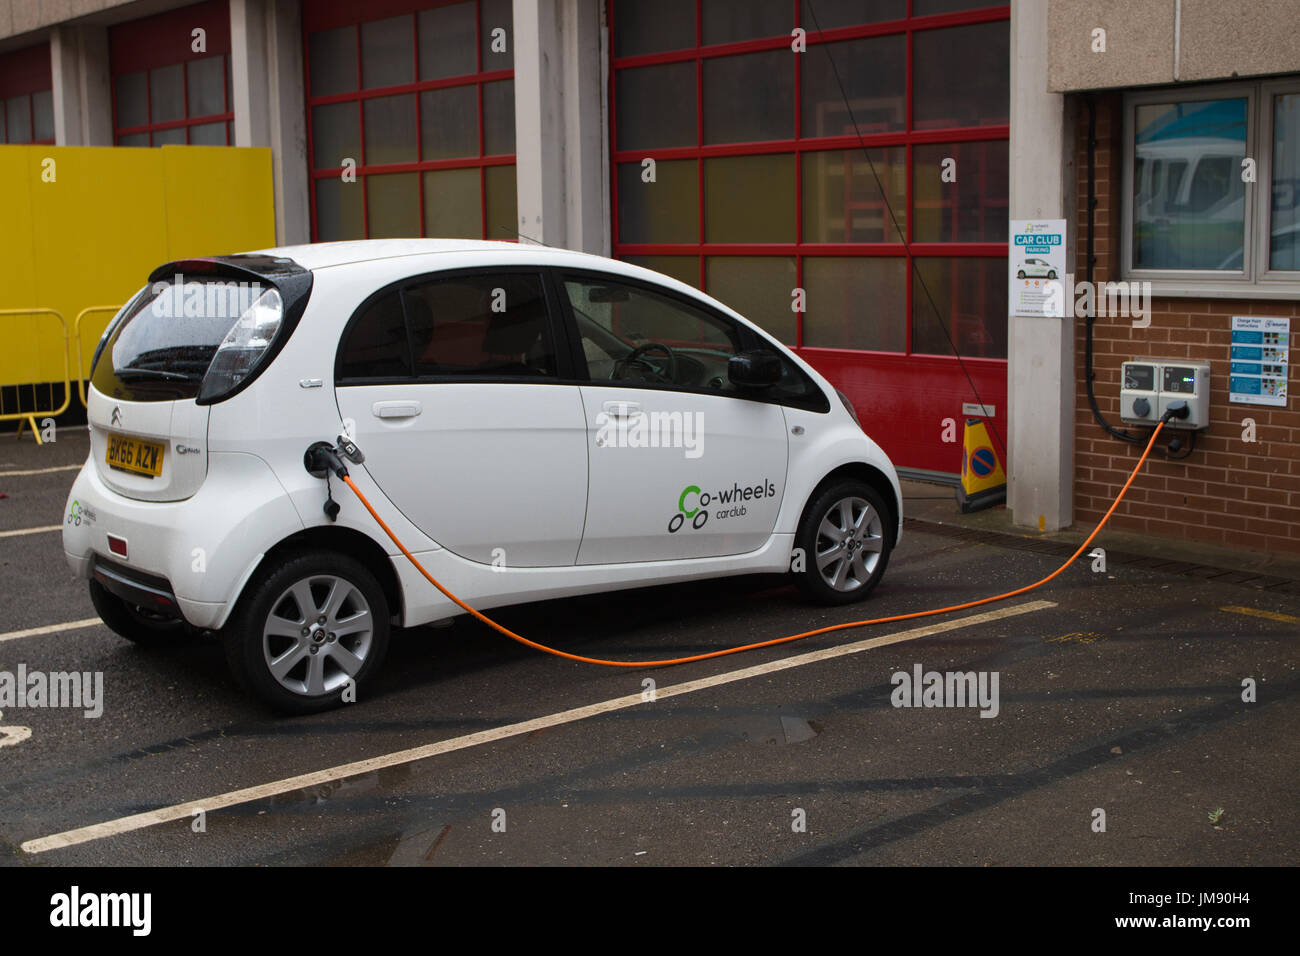 ELECTRIC CAR: Charging - Stock Image